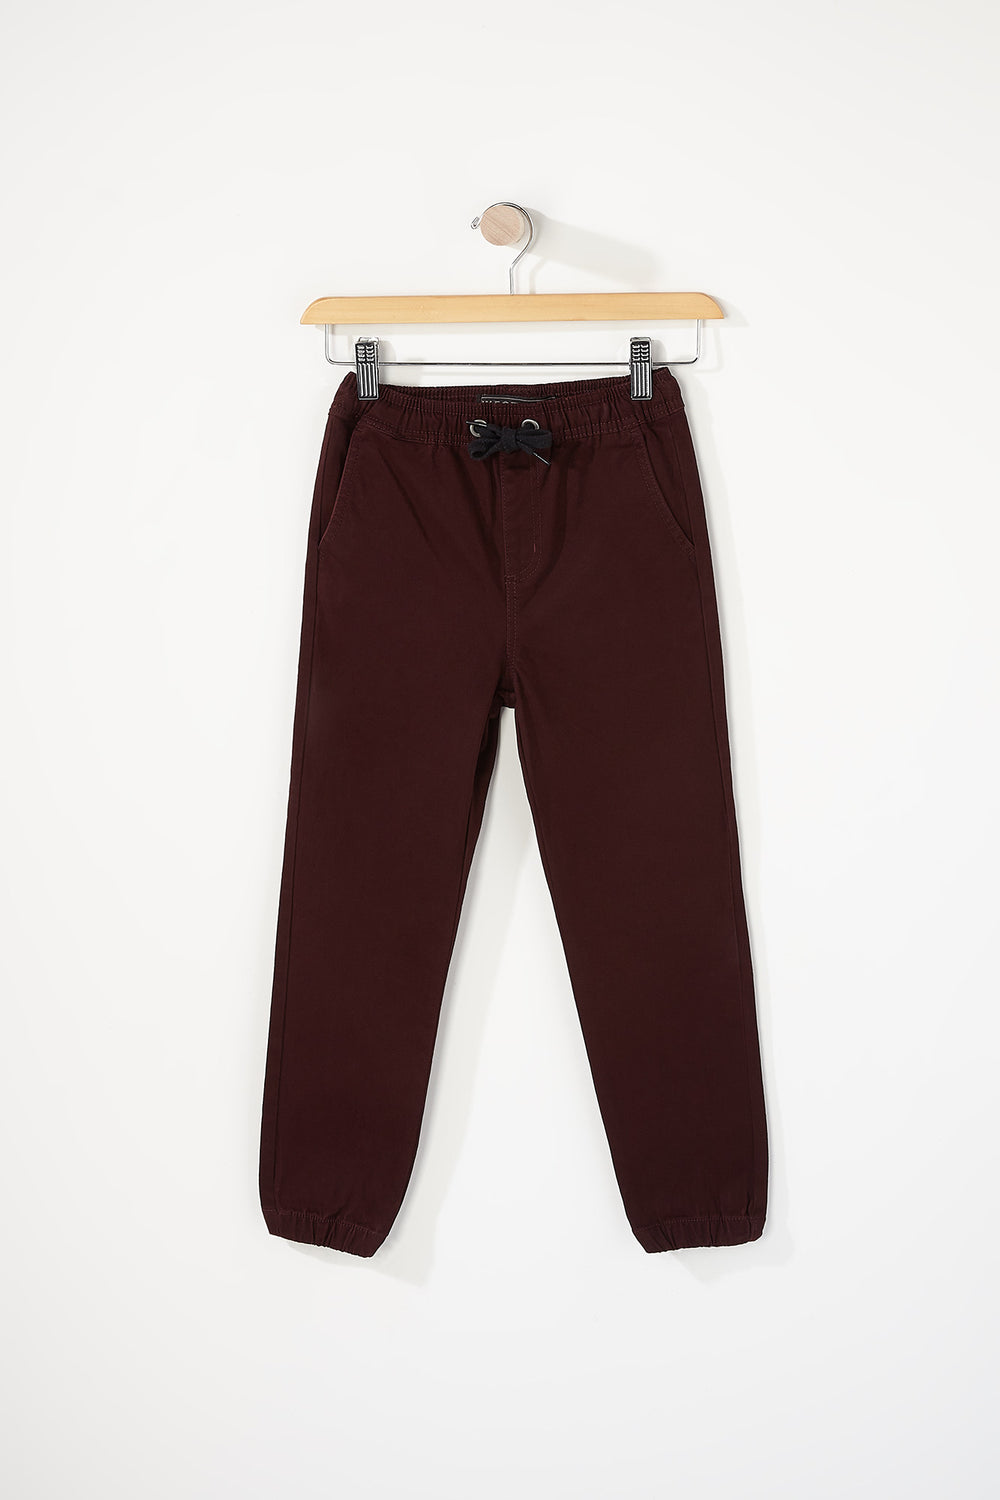 West49 Boys Basic Jogger Burgundy